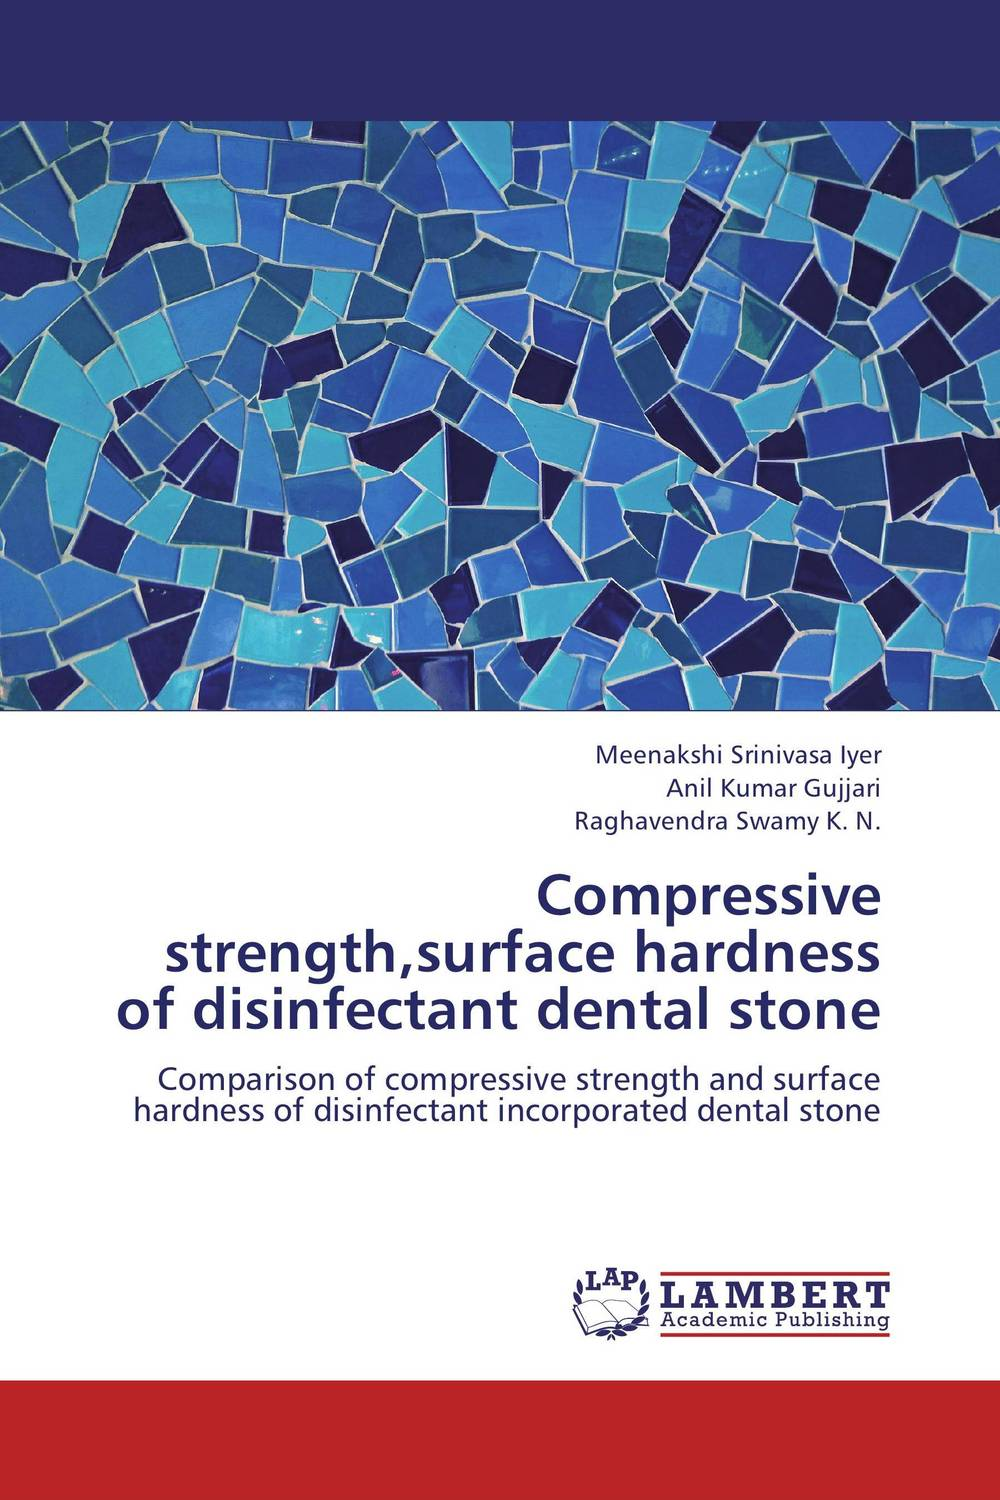 Compressive strength,surface hardness of disinfectant dental stone simranjeet kaur amaninder singh and pranav gupta surface properties of dental materials under simulated tooth wear